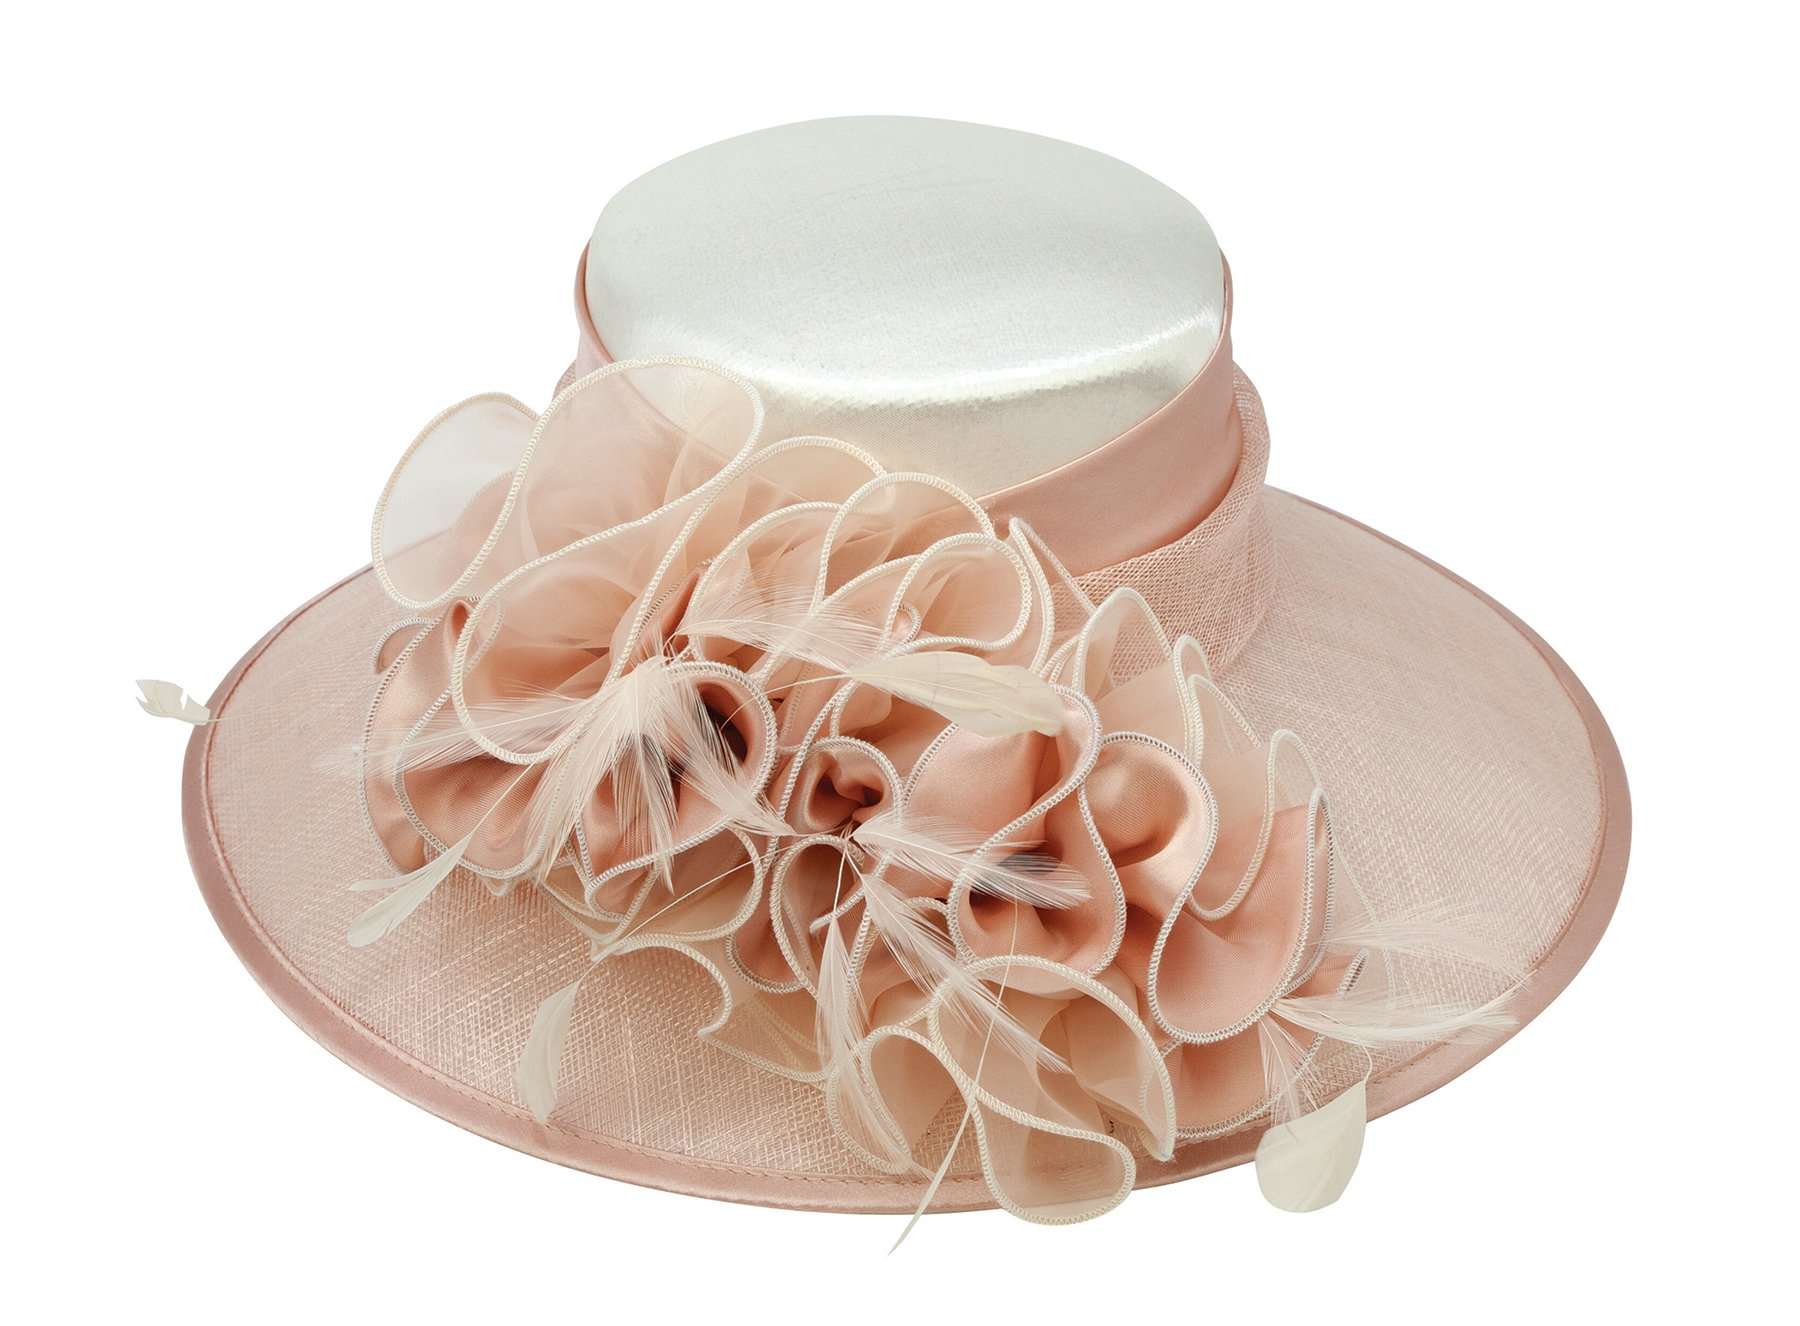 ChicHeadwear Womens Wide Brim Bow Sinamay Fashion Hat - Blush w/Ivory by ChicHeadwear